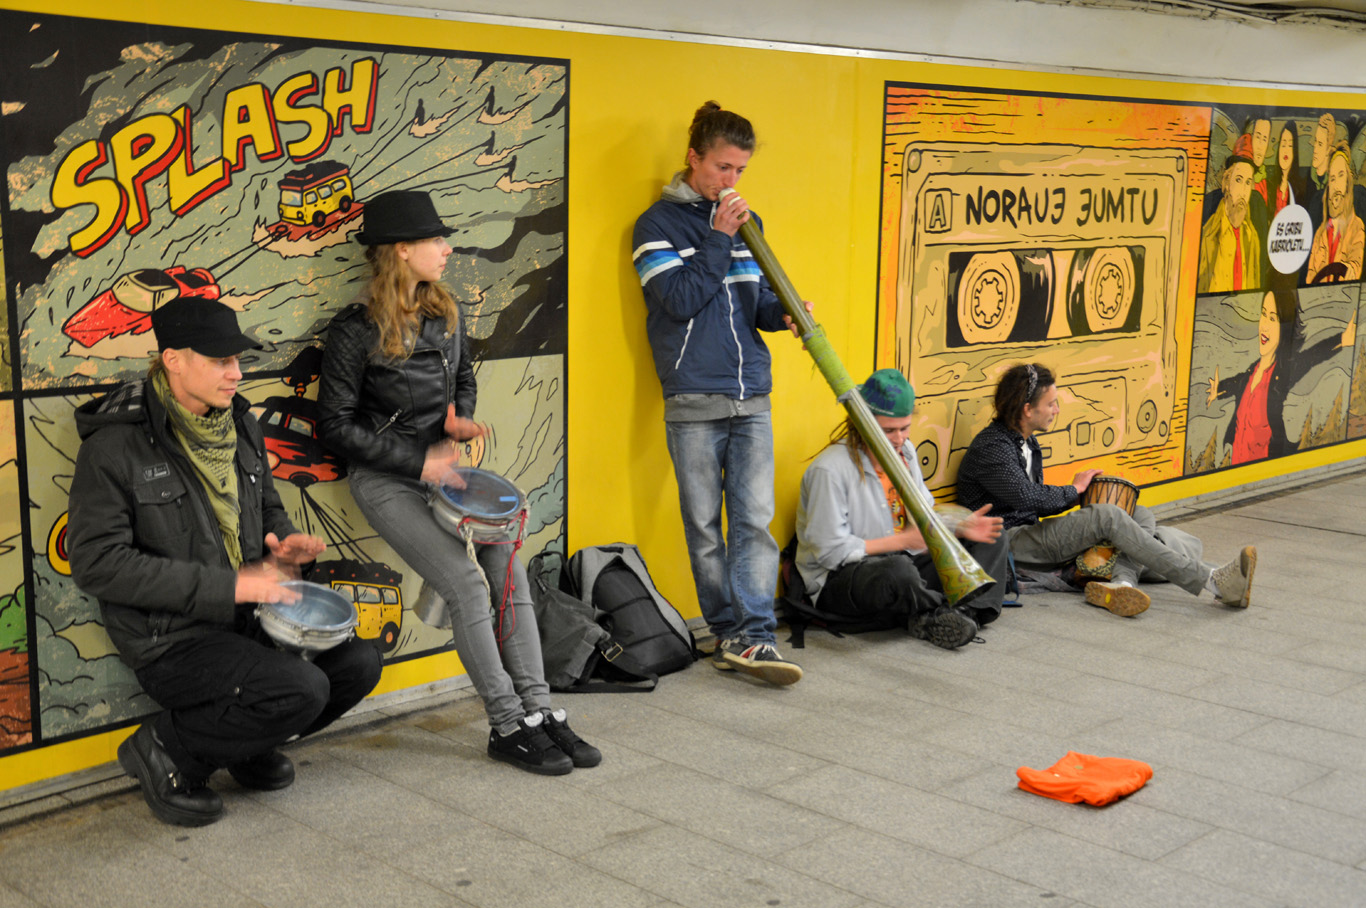 A band in the underground passage